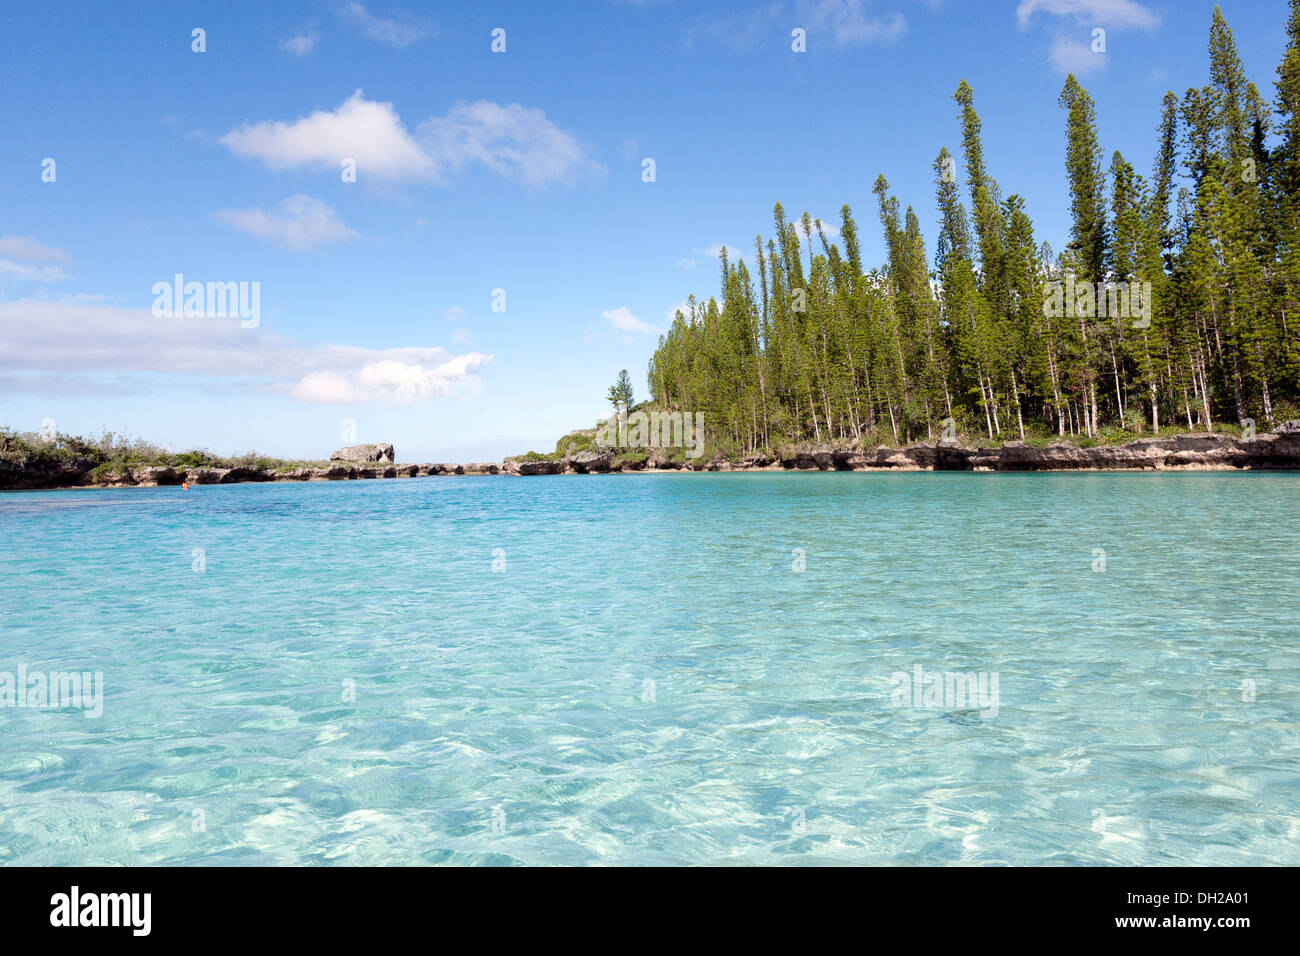 Piscine naturelle stock photos piscine naturelle stock - Piscine naturelle ...